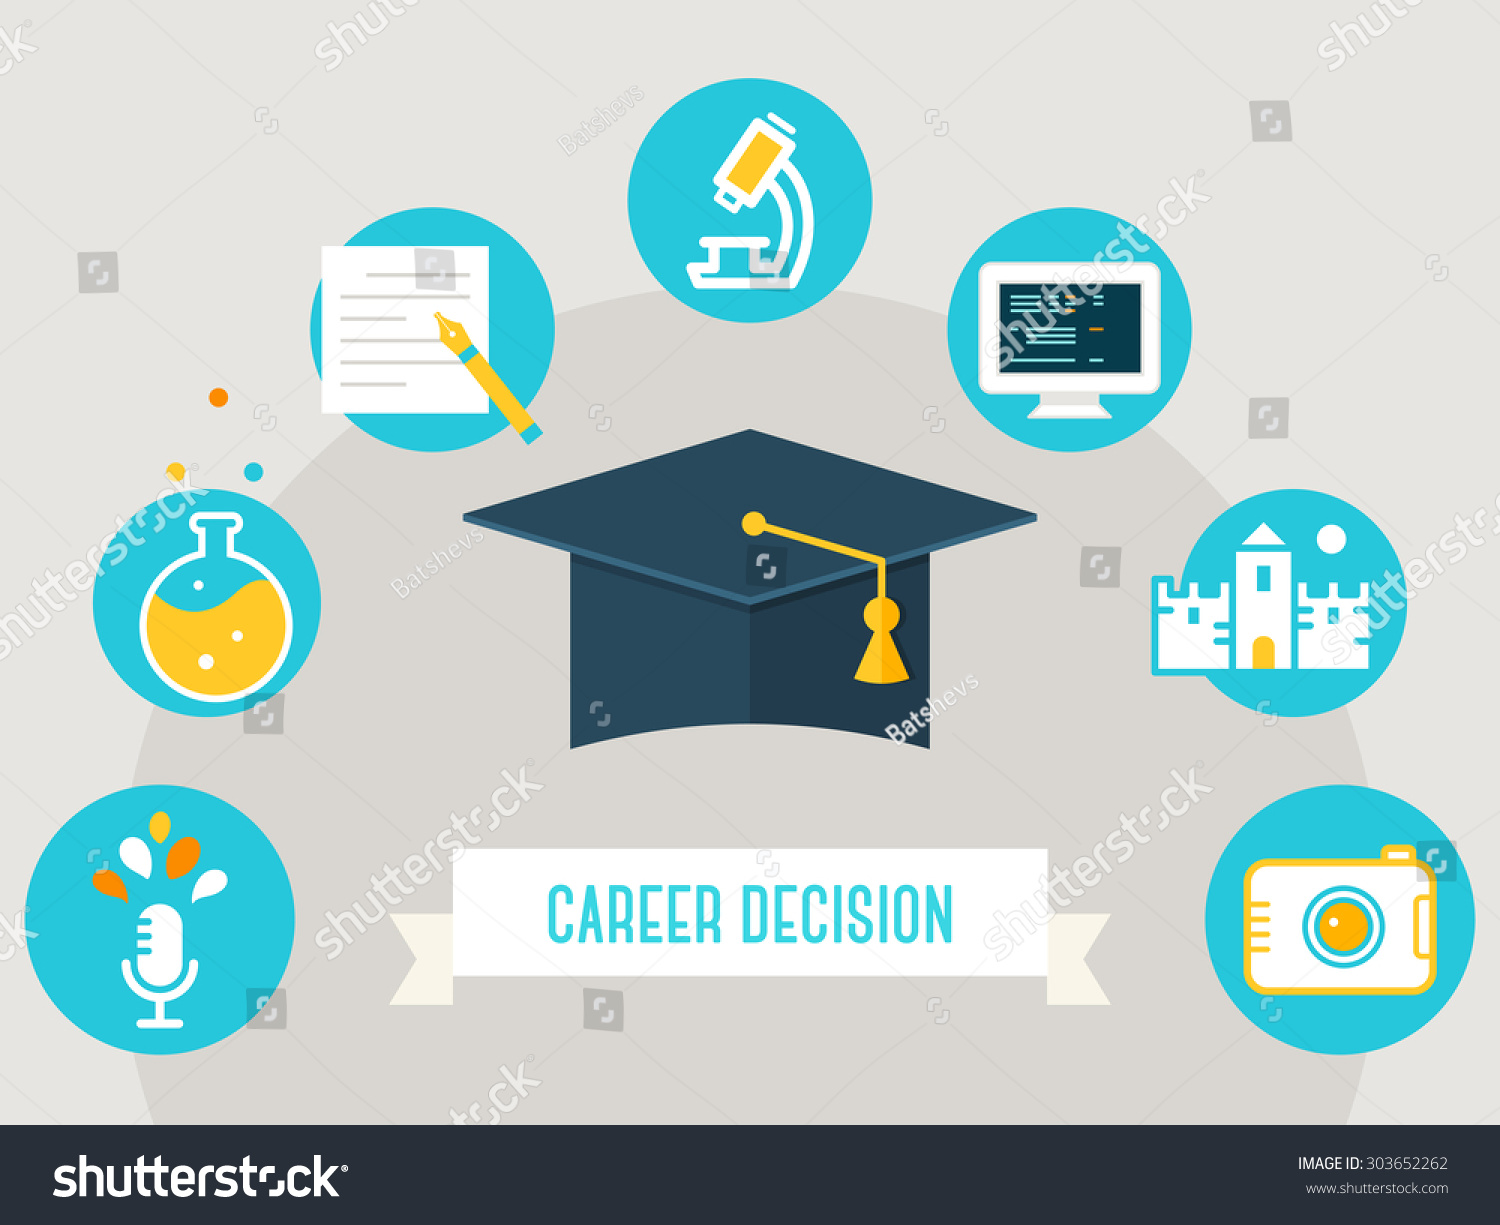 Deciding stock illustrations royalty free gograph - Graduation Cap Surrounded By Education Icons And Career Decision Sign Choosing A Course Occupation